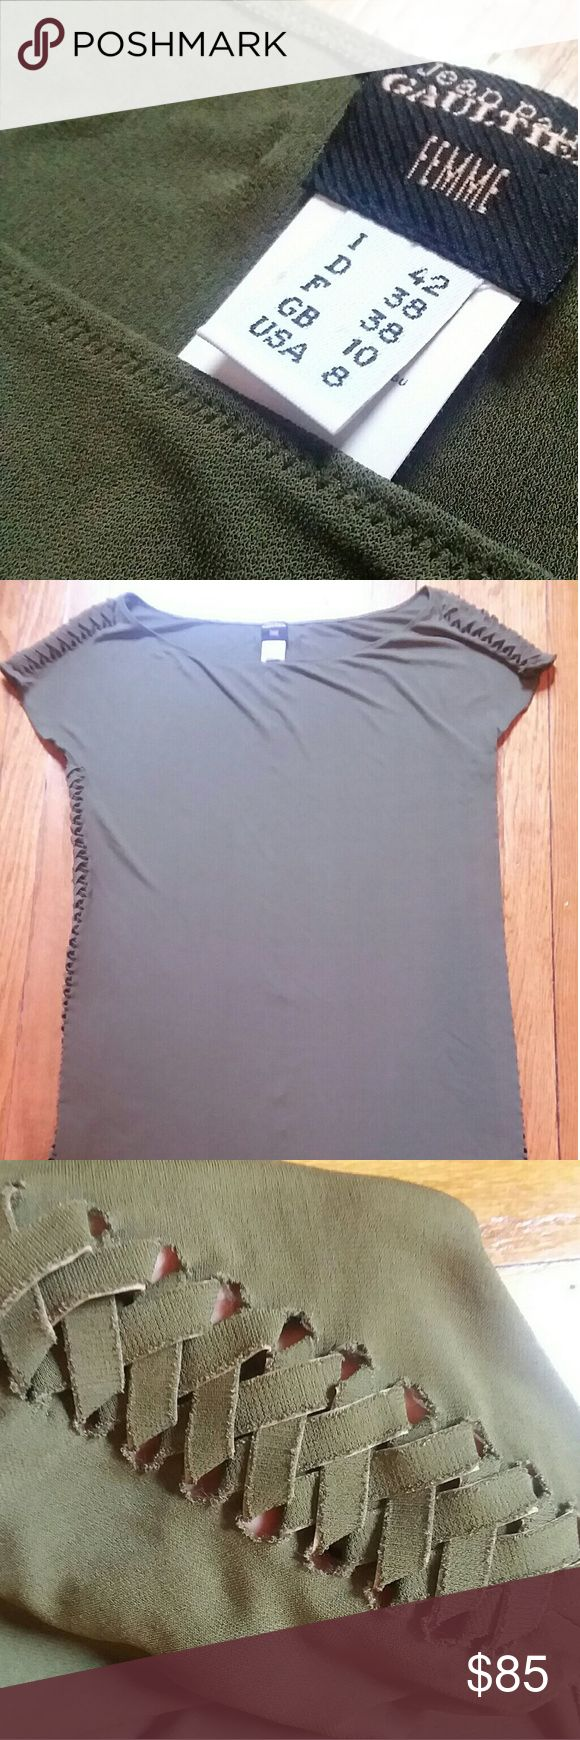 Jean Paul Gaultier women's blouse sz 8 Beautiful olive green tee shirt blouse, with fishtail braid details along shoulders and down both sides. Fall will be here before you know it! Jean Paul Gaultier Tops Blouses